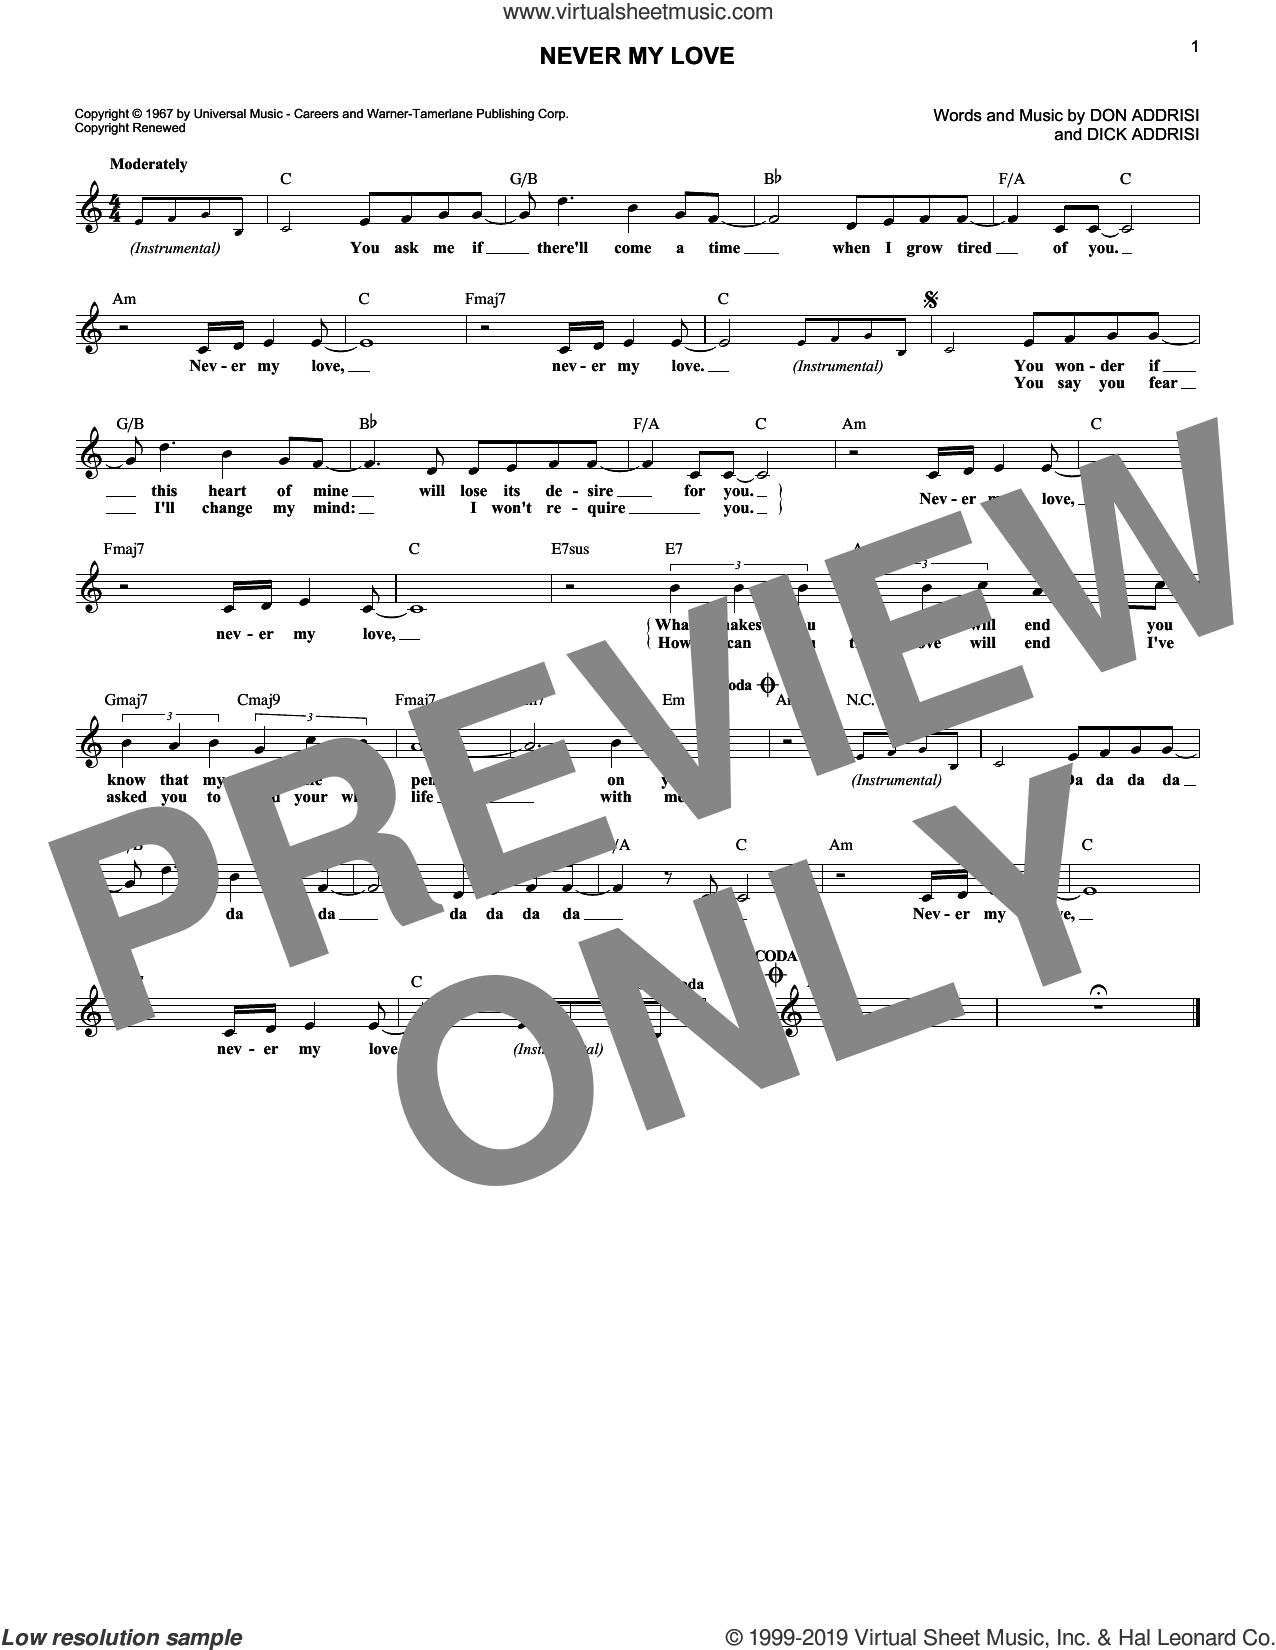 Never My Love sheet music for voice and other instruments (fake book) by Don Addrisi, Blue Swede, The Association, The Fifth Dimension and Dick Addrisi, wedding score, intermediate skill level